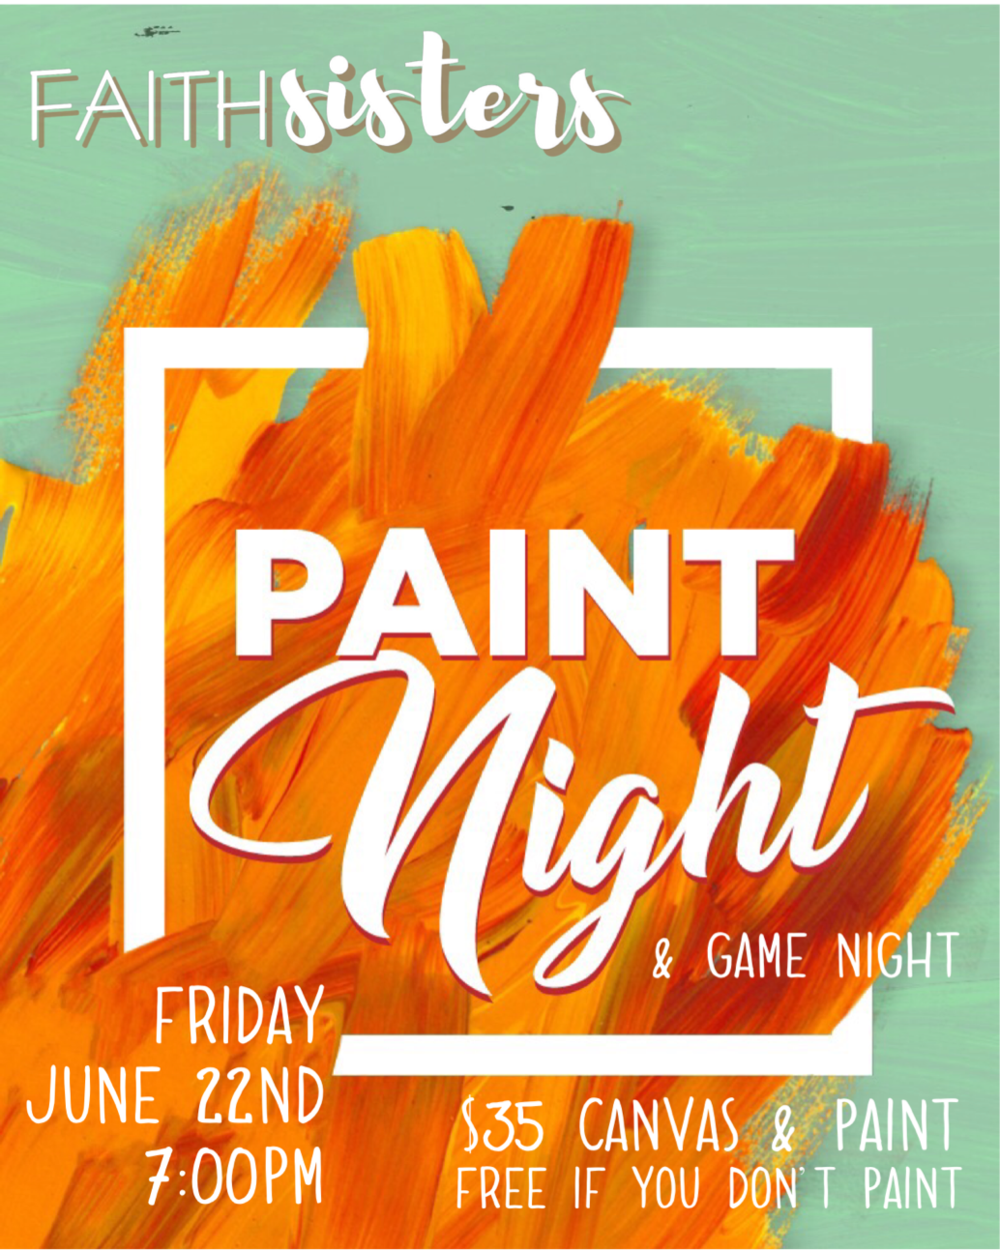 Paint & Game Night - FaithSisters are hosting a fun Paint & Game night at the church.